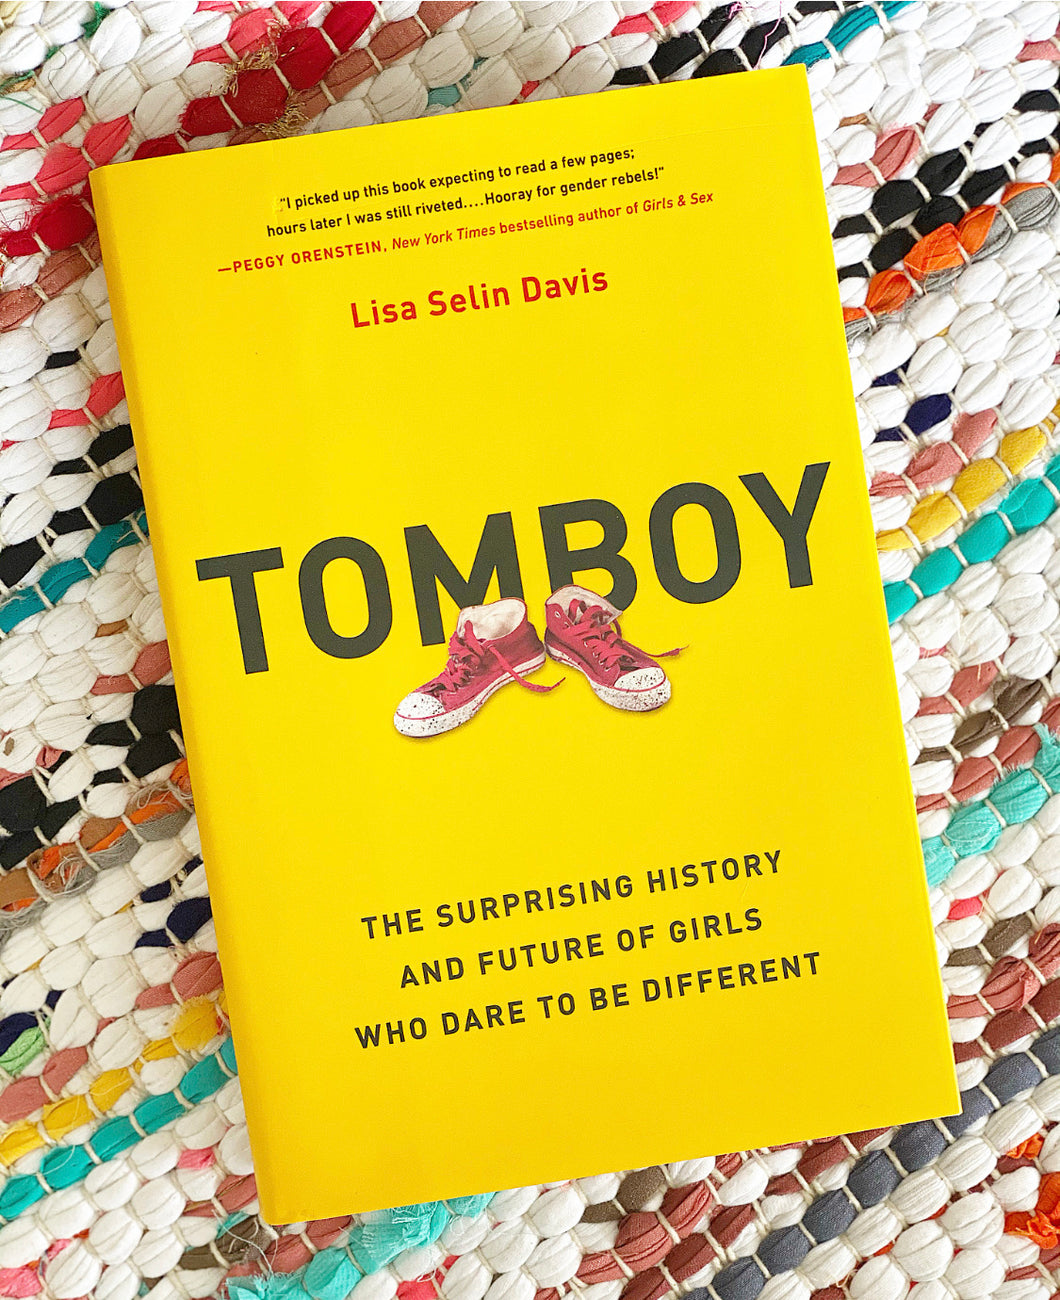 Tomboy: The Surprising History and Future of Girls Who Dare to Be Different Lisa Selin Davis